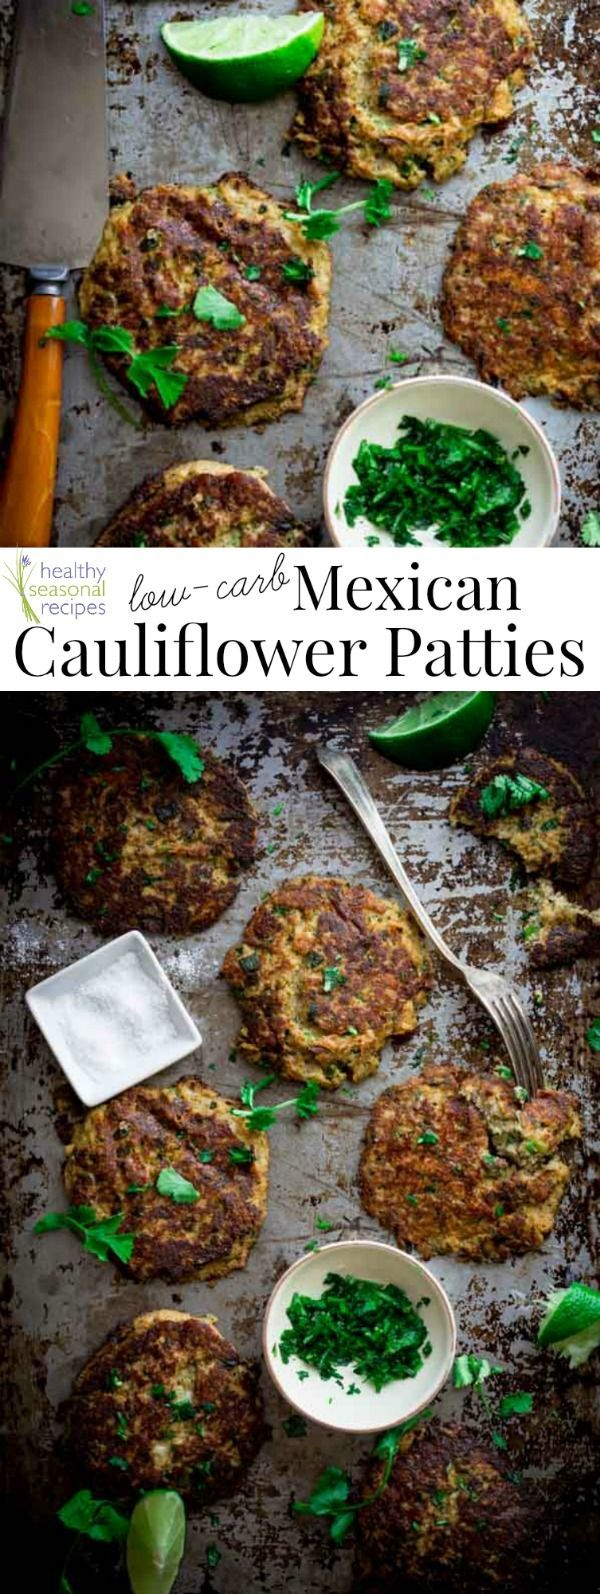 Blog post at Healthy Seasonal Recipes : These low-carb Mexican cauliflower patties are everything!They are the bee's knees! They are gluten-free and vegetarian and will disappe[..]